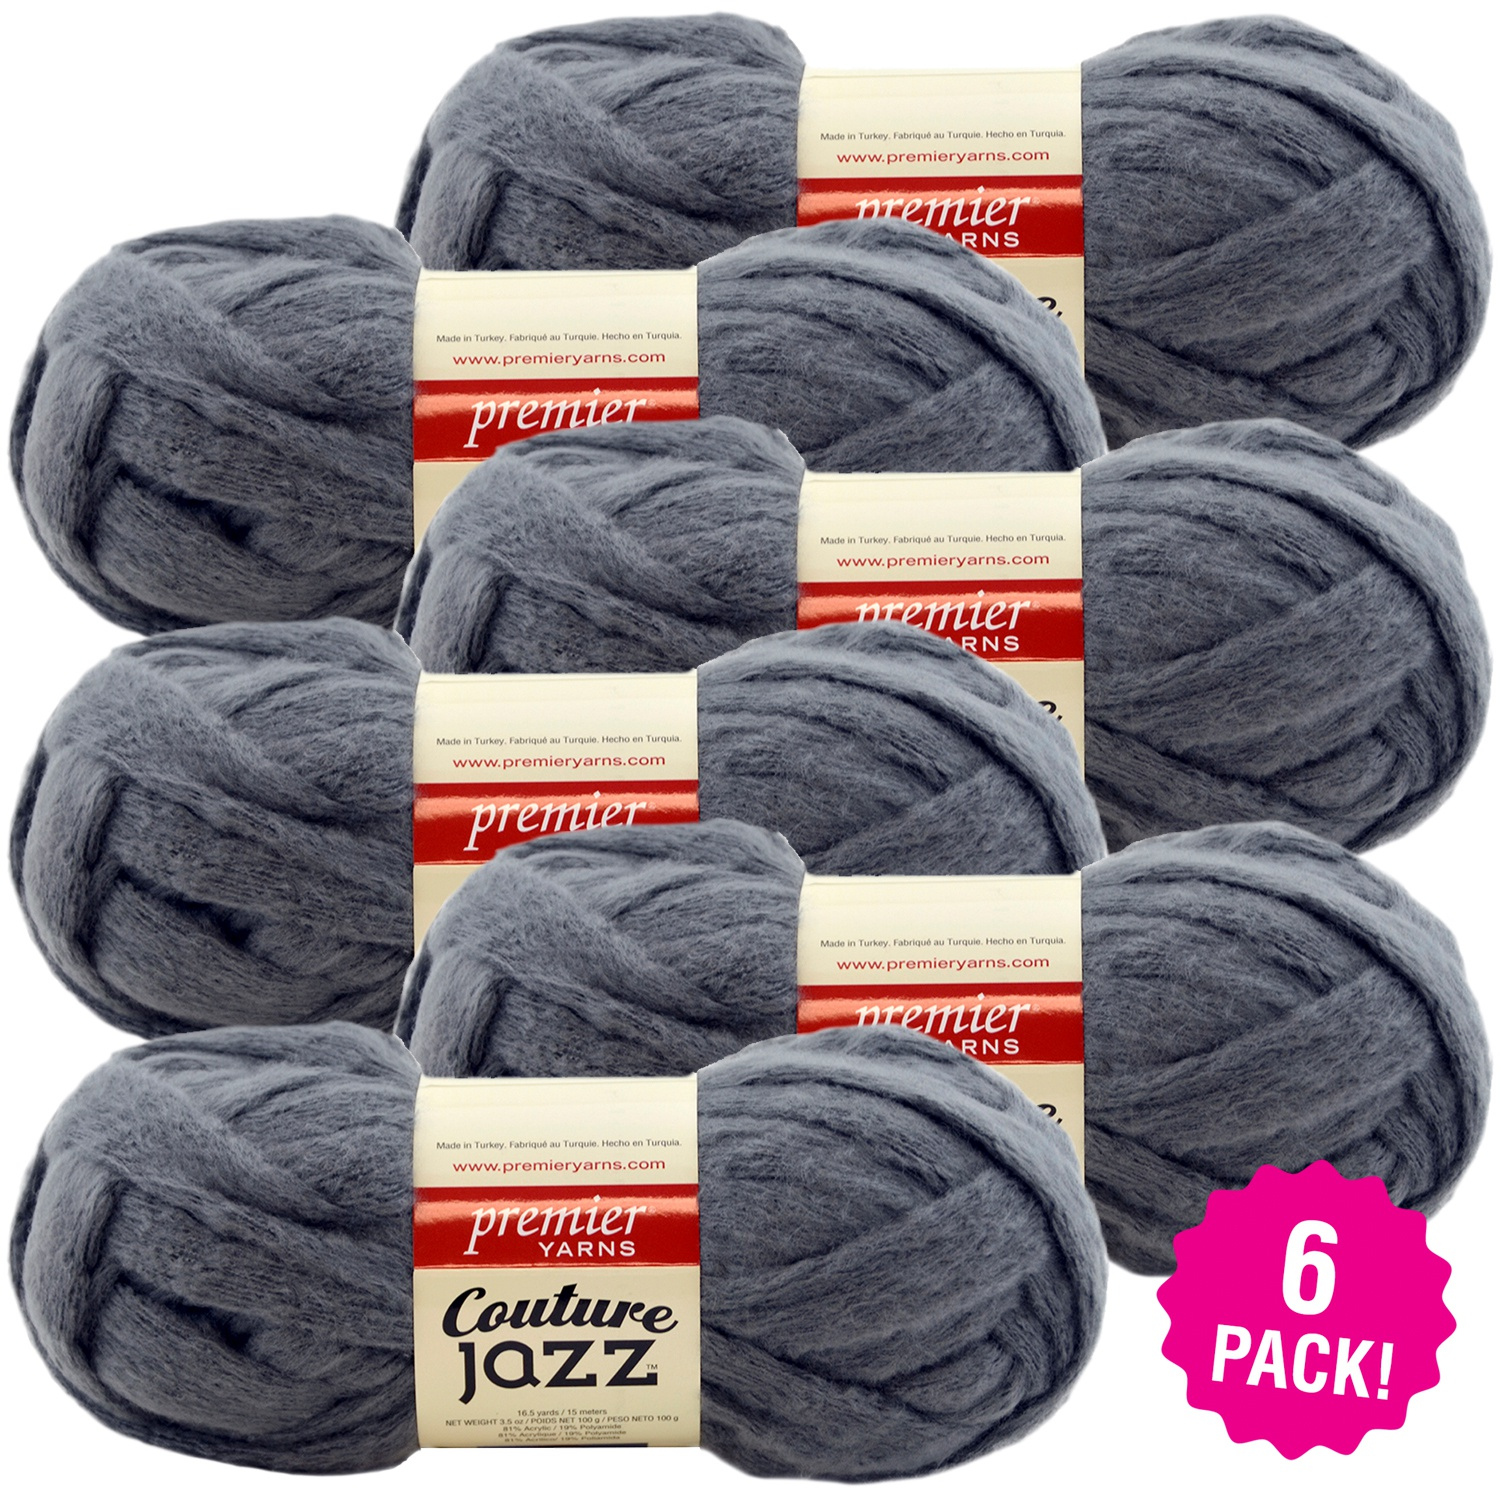 Premier Yarns Couture Jazz Yarn - Slate, Multipack of 6